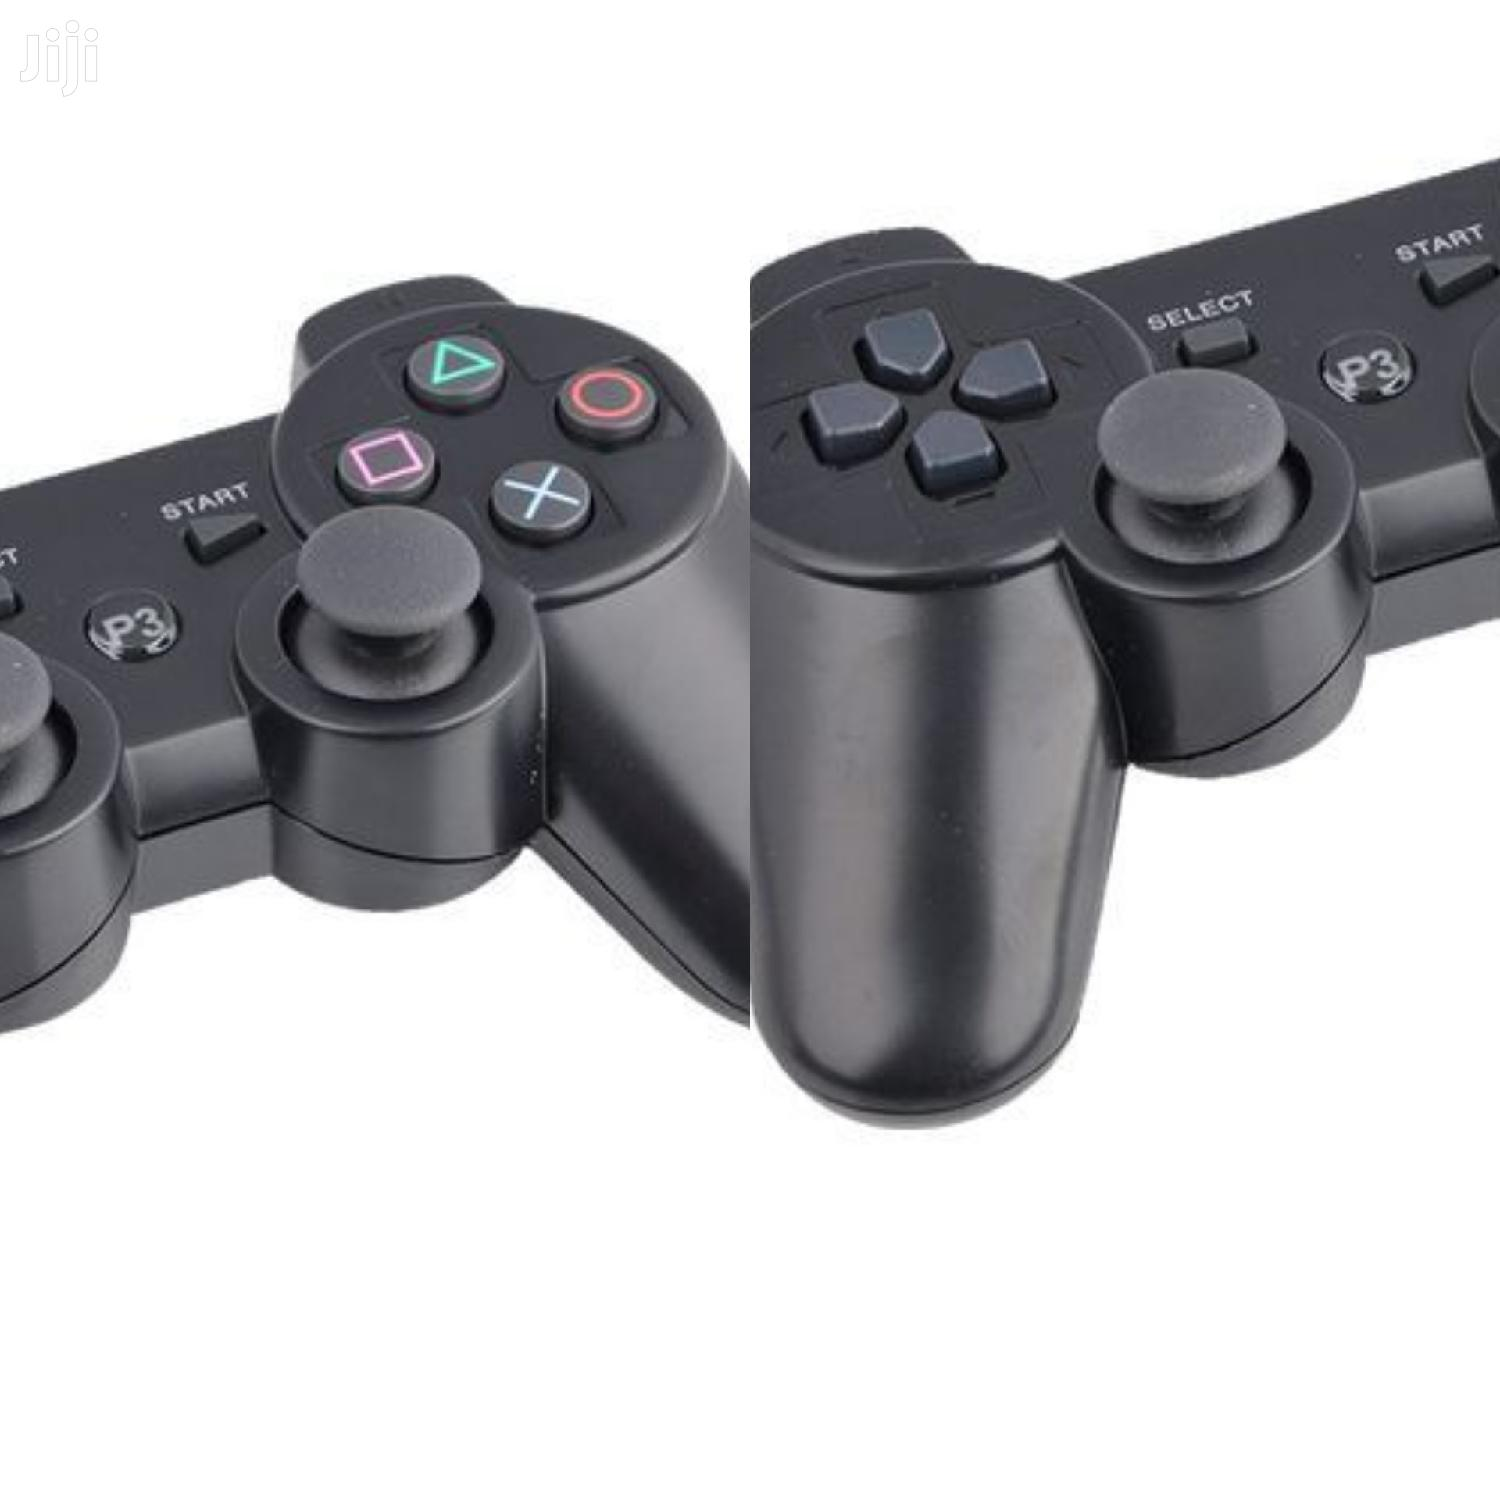 Generic P3 PS3/PC Pad Double PS Shock 3 - Wireless Black